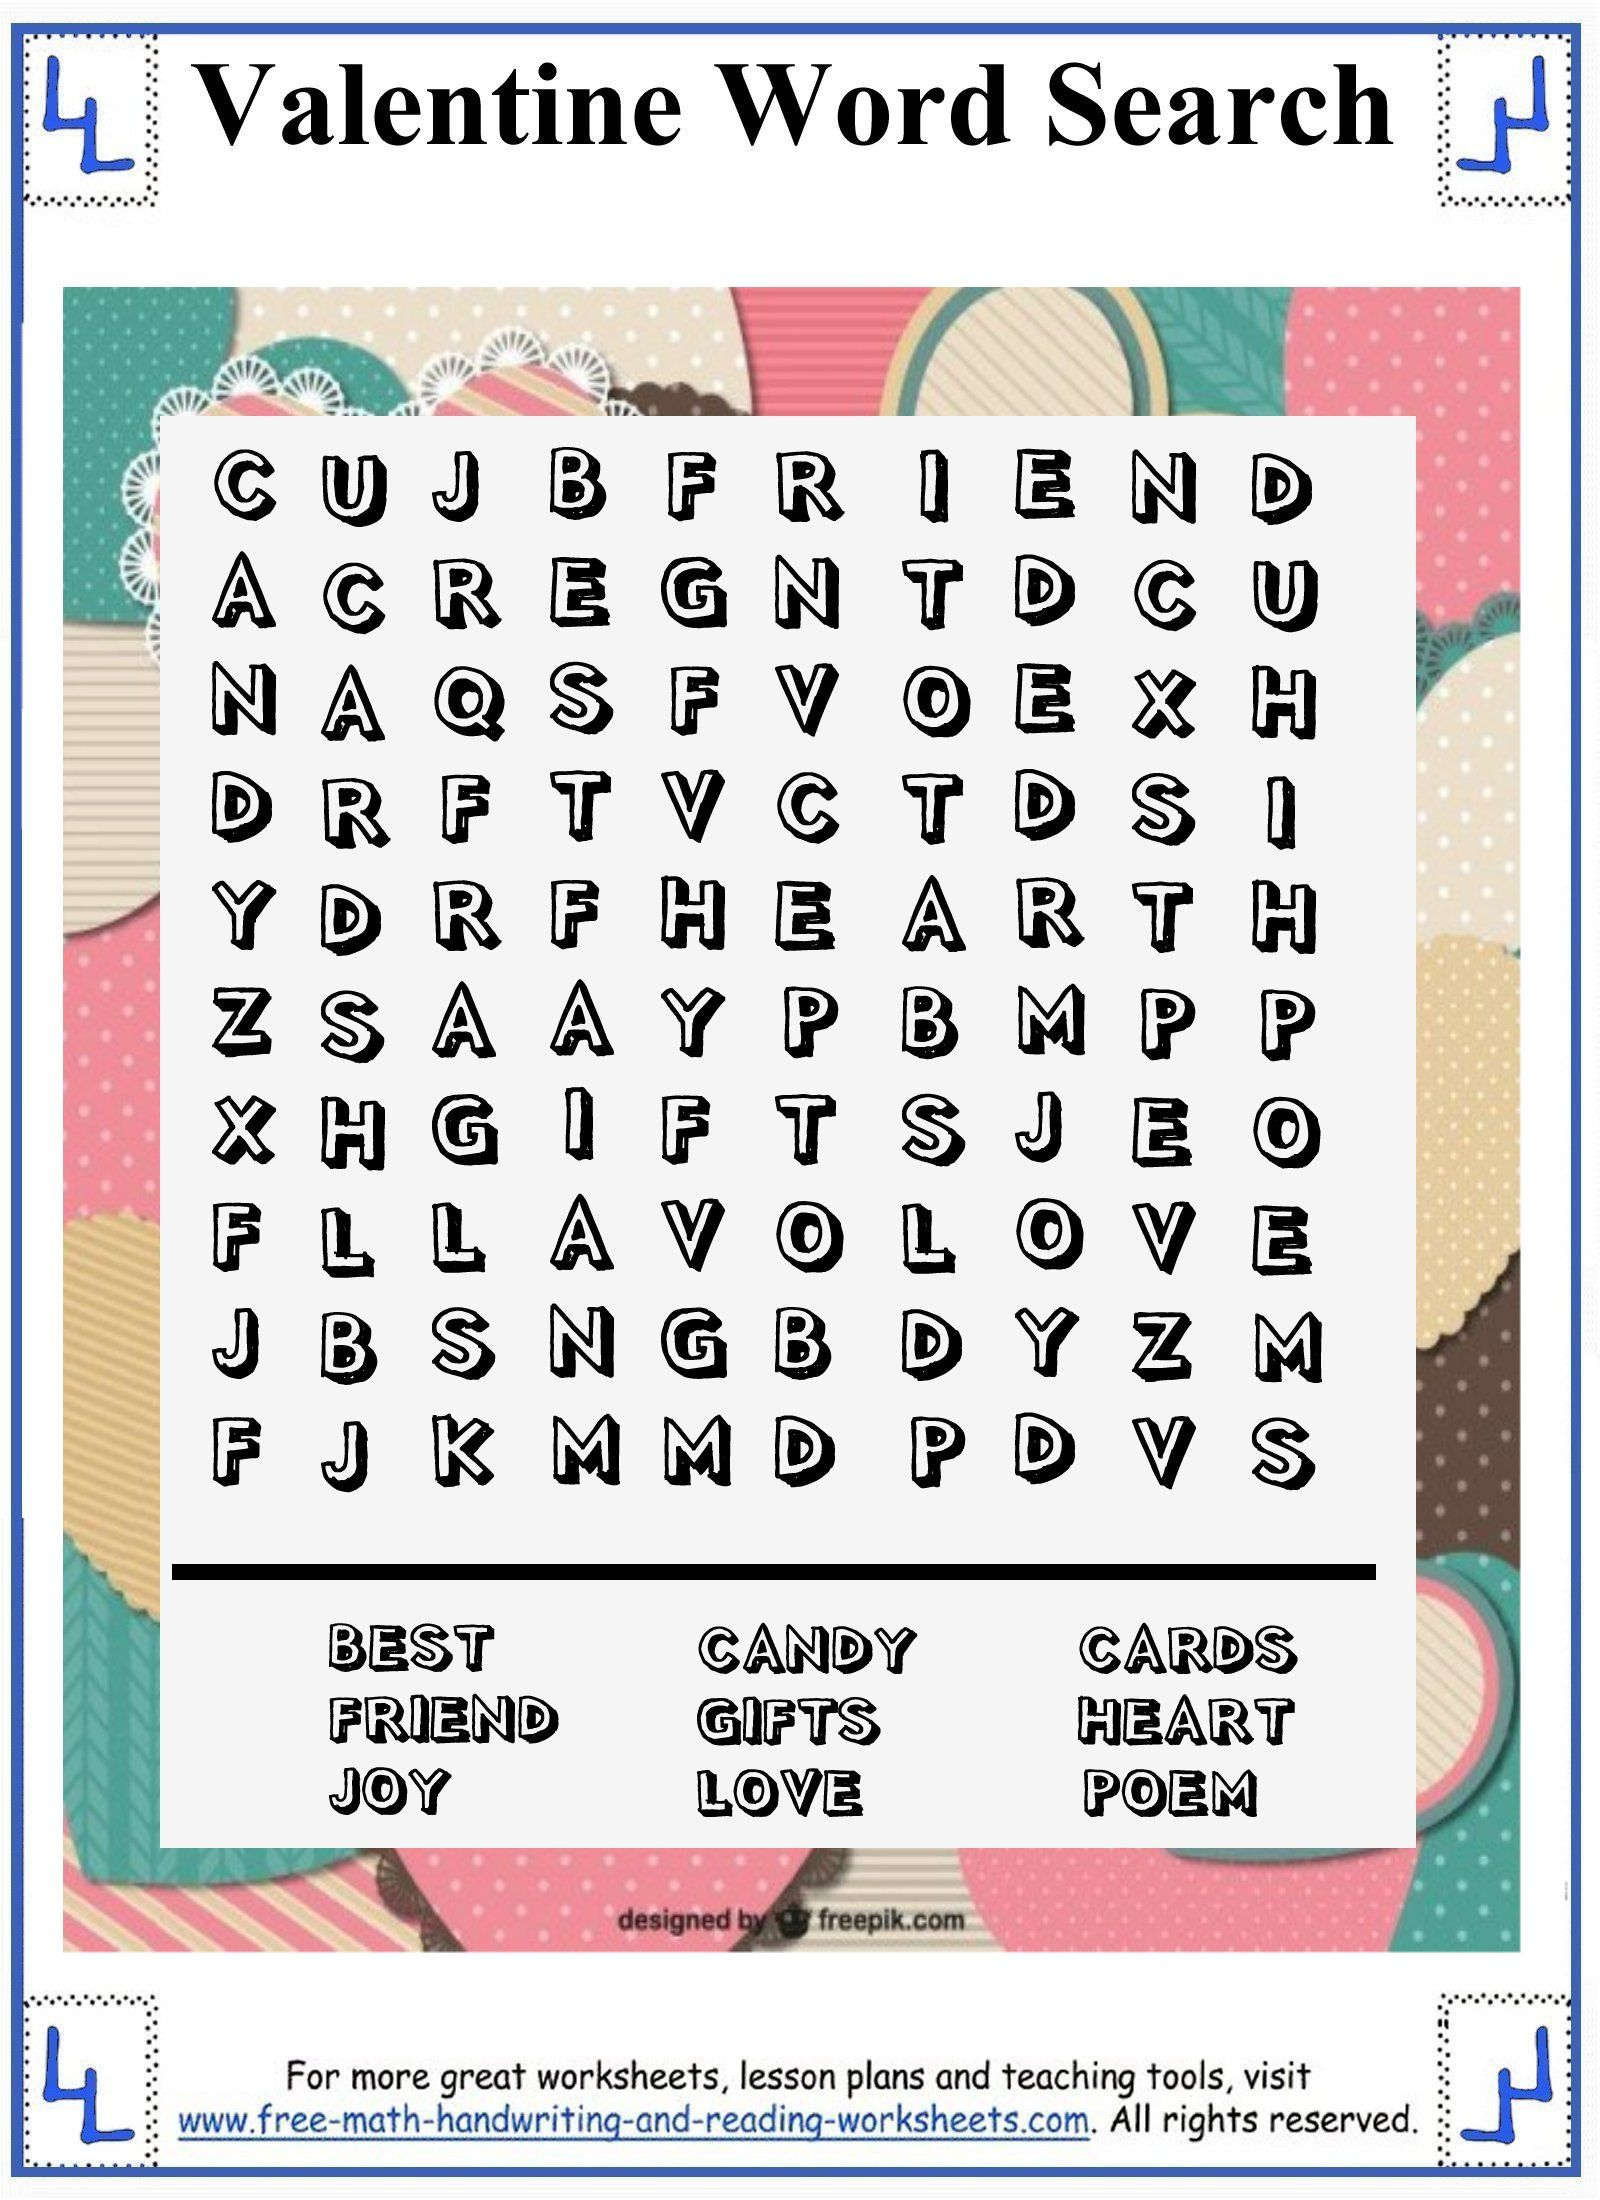 Valentine Word Search  Printable Puzzles  10x10 wordsearch grid